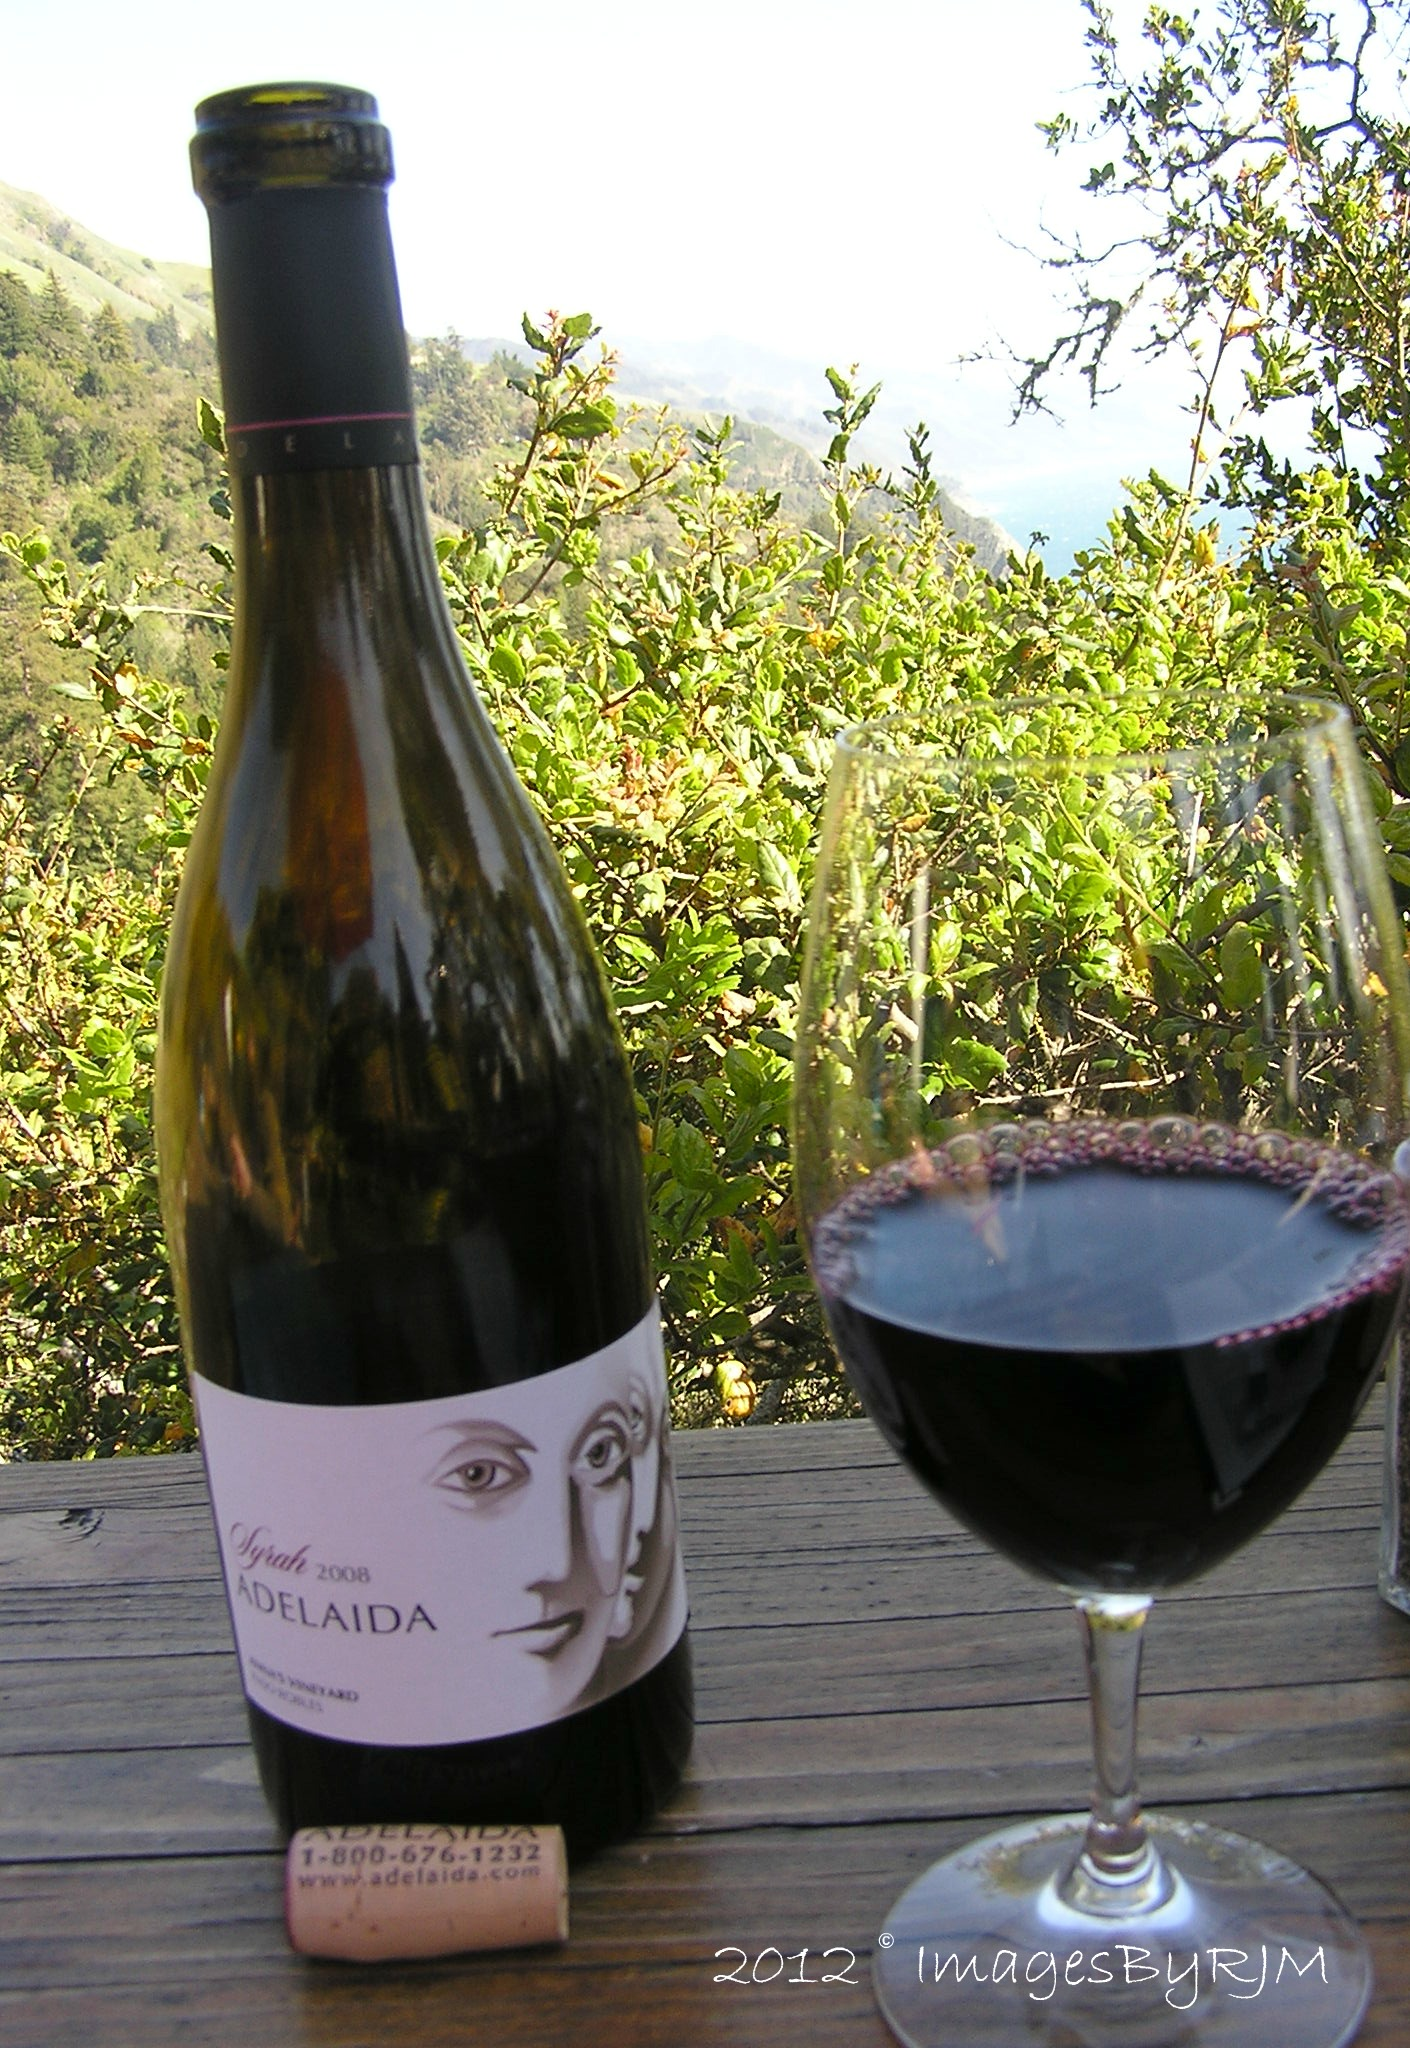 Bottle and glass of red wine, with foliage and ocean in background.